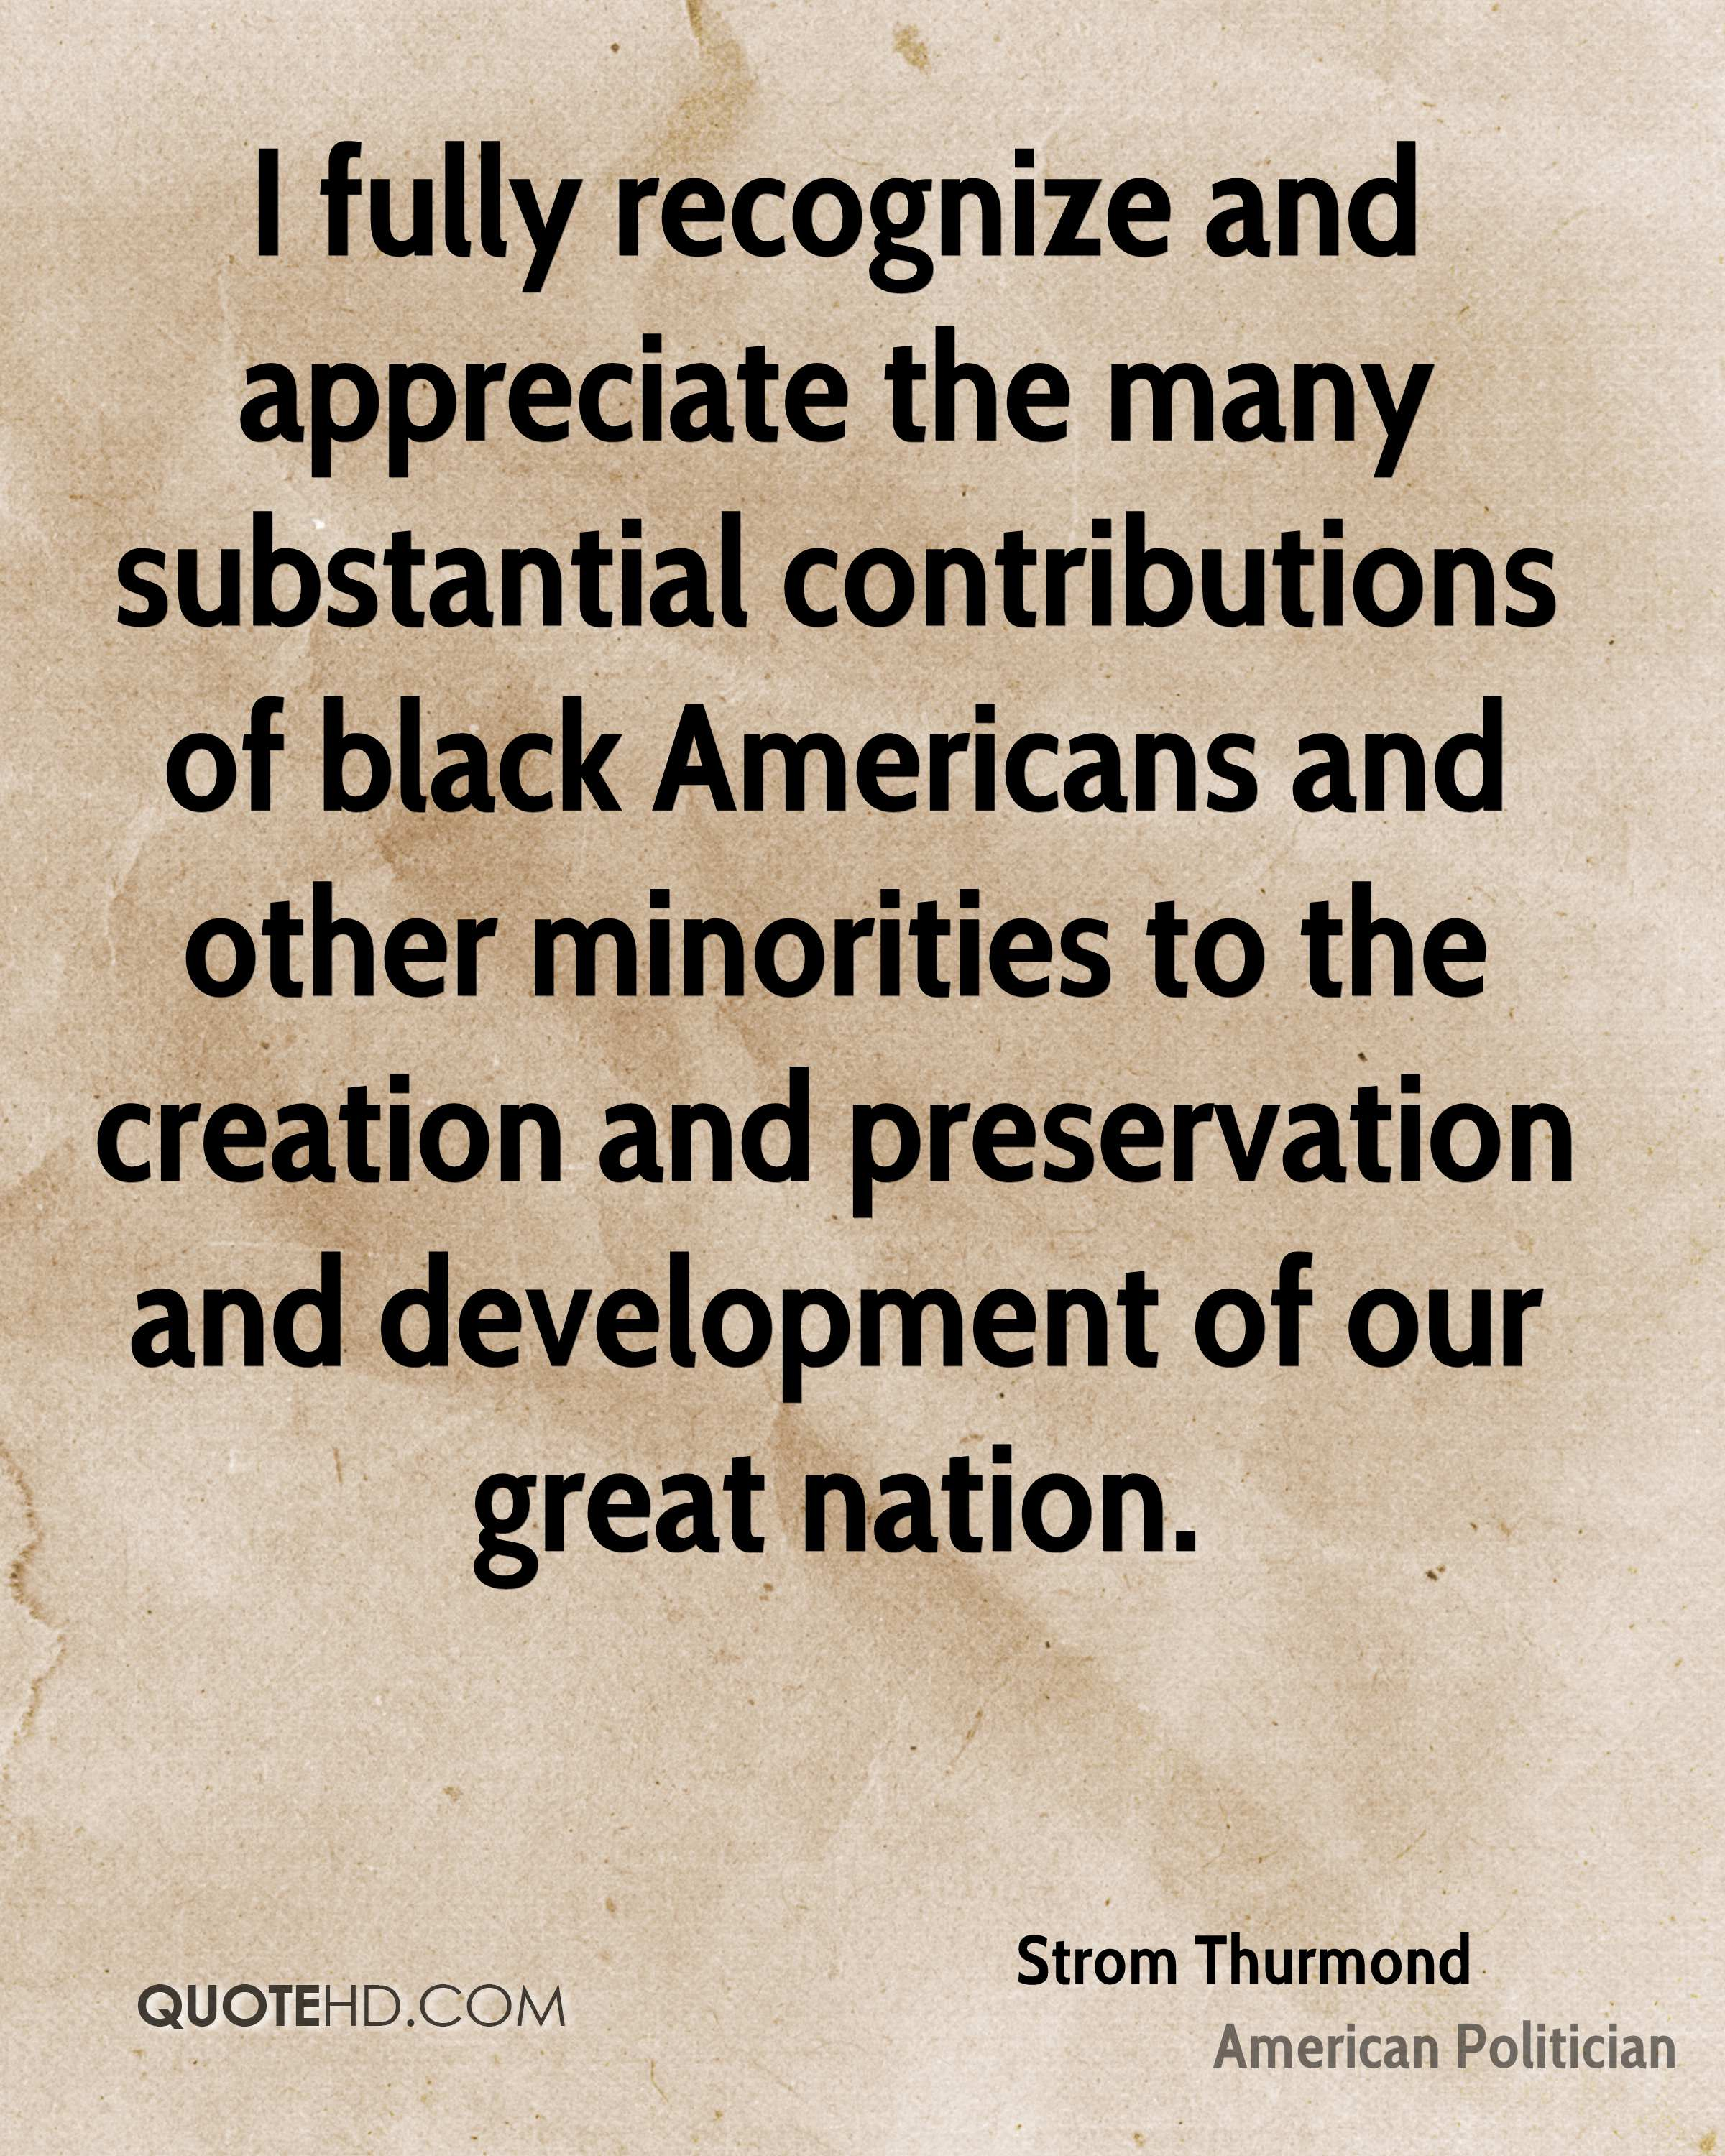 I fully recognize and appreciate the many substantial contributions of black Americans and other minorities to the creation and preservation and development of our great nation.